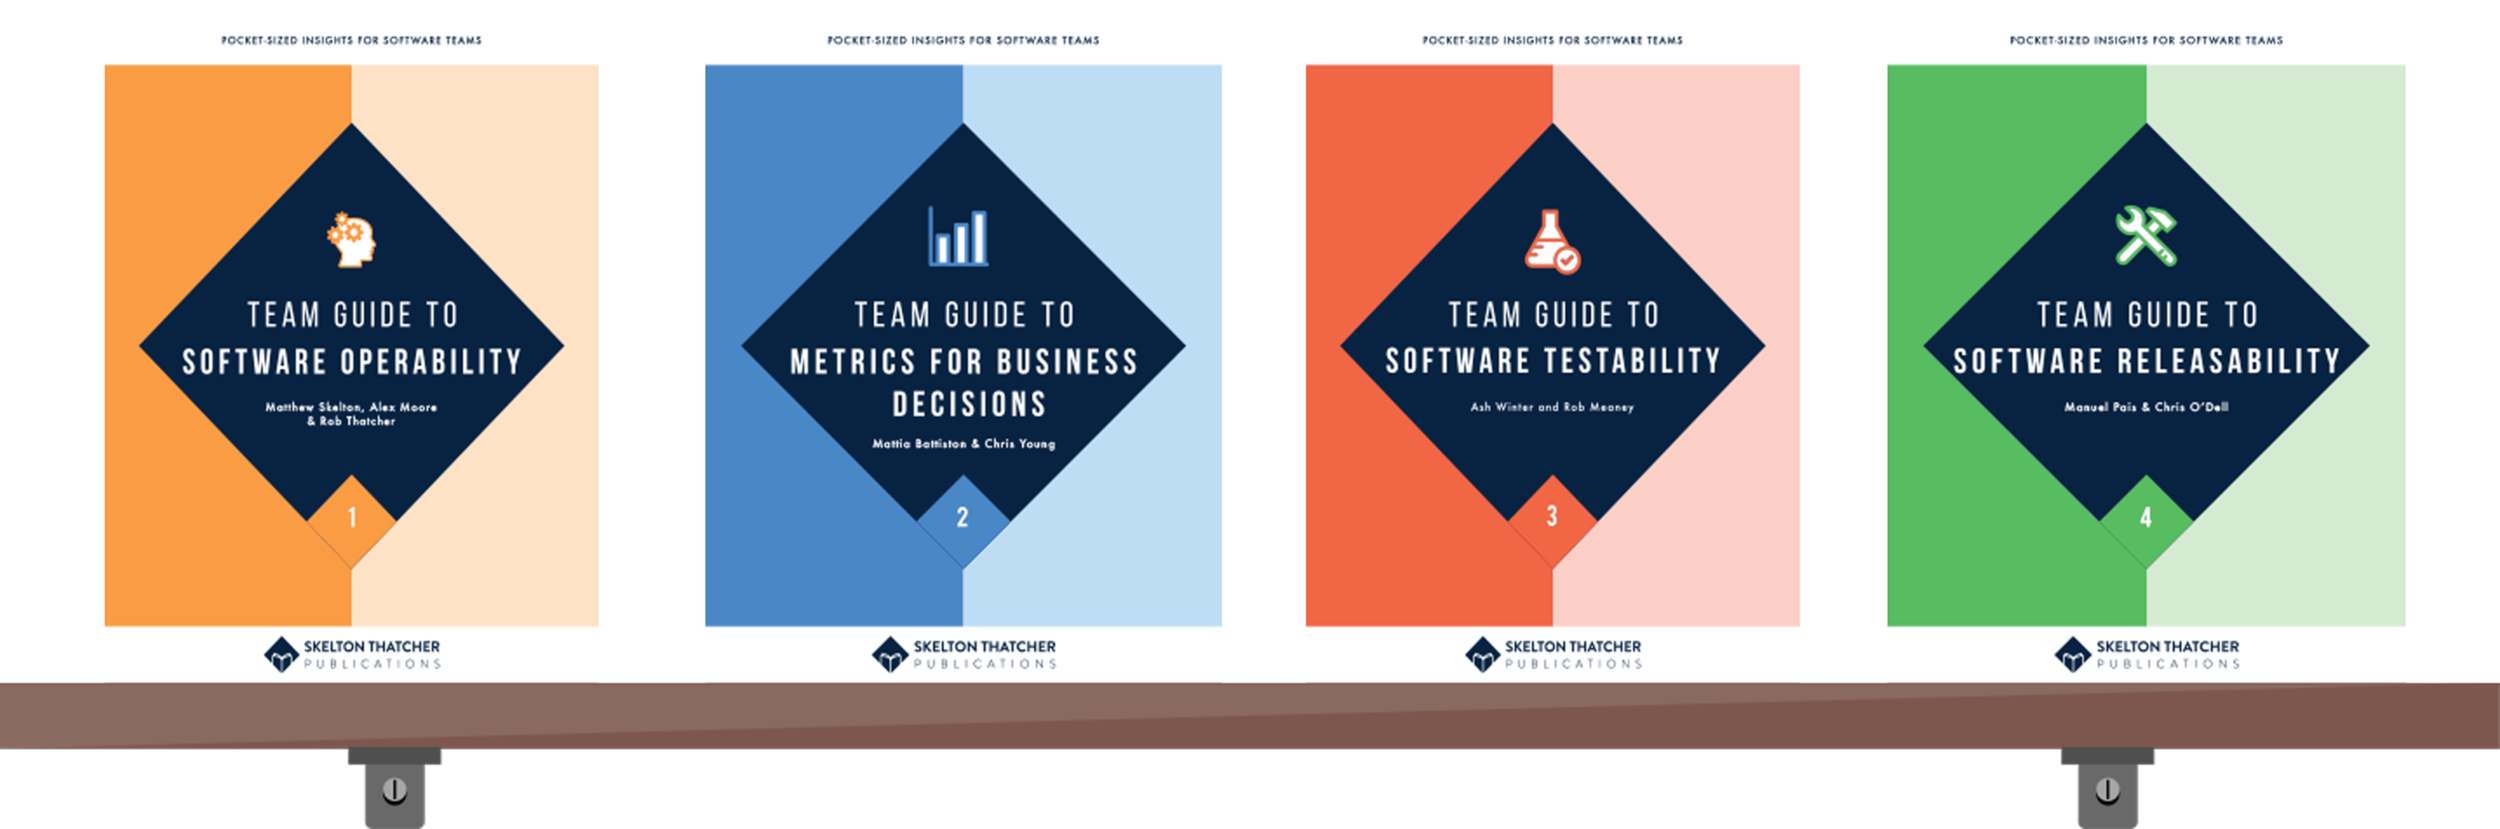 Team Guides for Software: Operability, Business Metrics, Testability, Releasability - published under Skelton Thatcher Publications